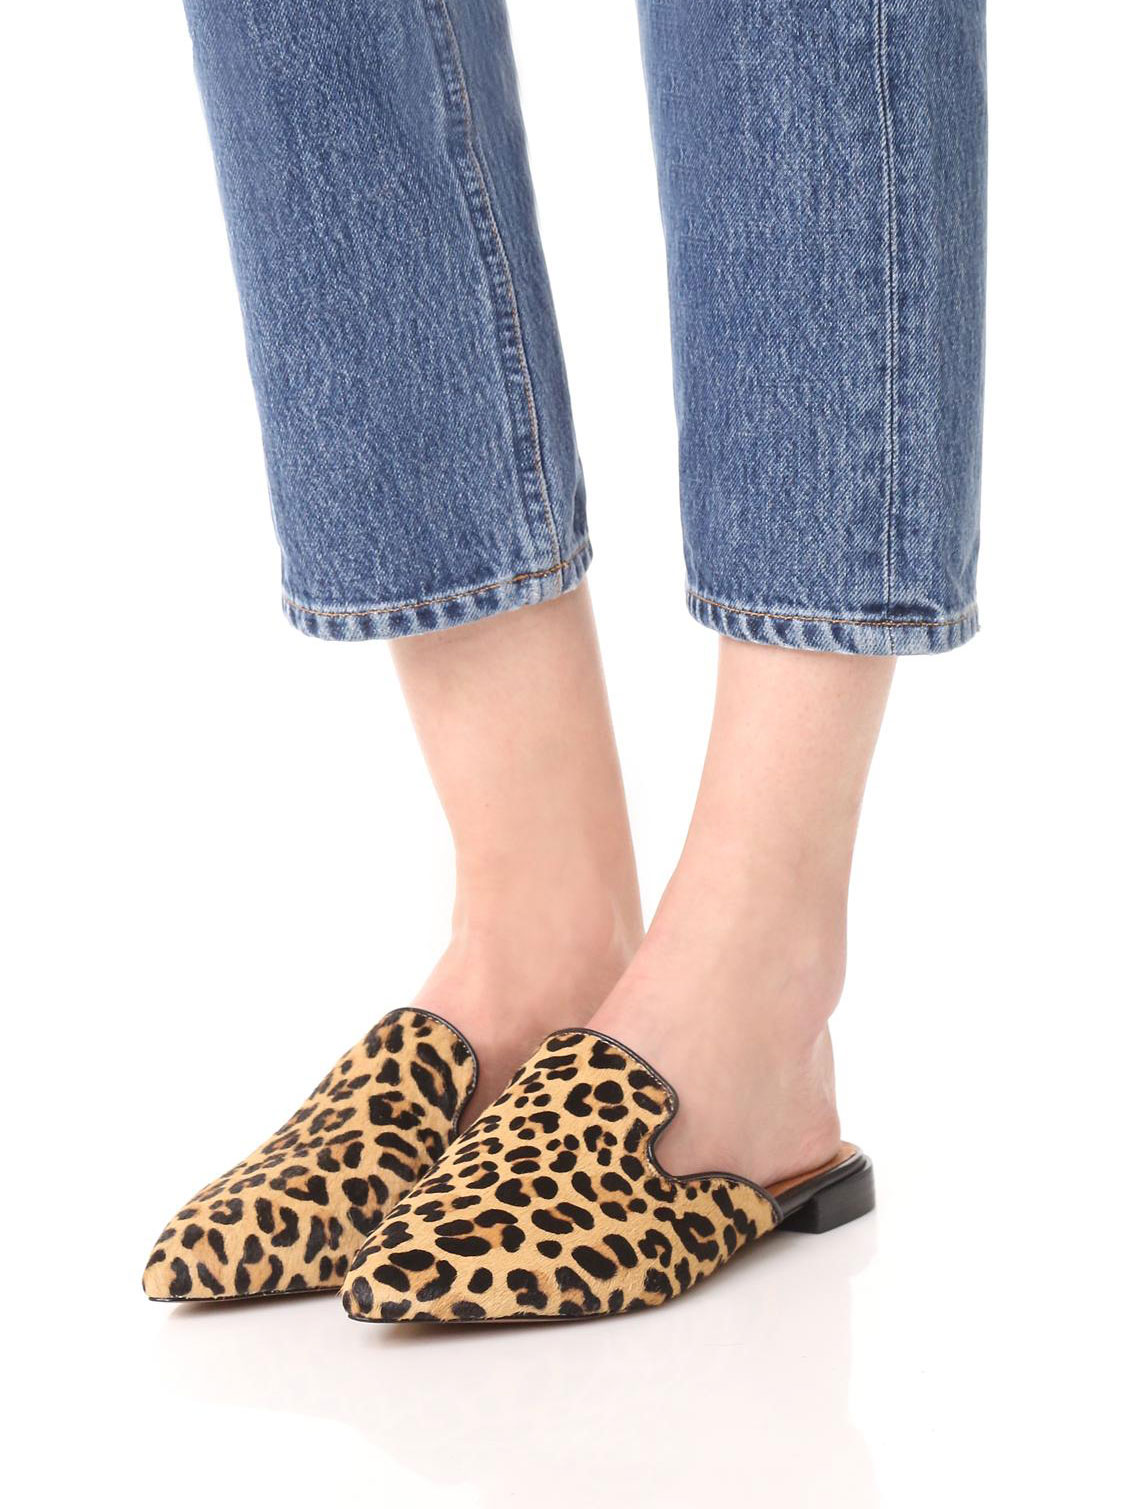 The season of stylish flats is here! Fall shoe love: Steven by Steve Madden Valent Leopard Haircalf Mules | glitterinc.com | @glitterinc - 15 Trendy Flats To Fall in Love With This Season by NC style blogger Glitter, Inc.